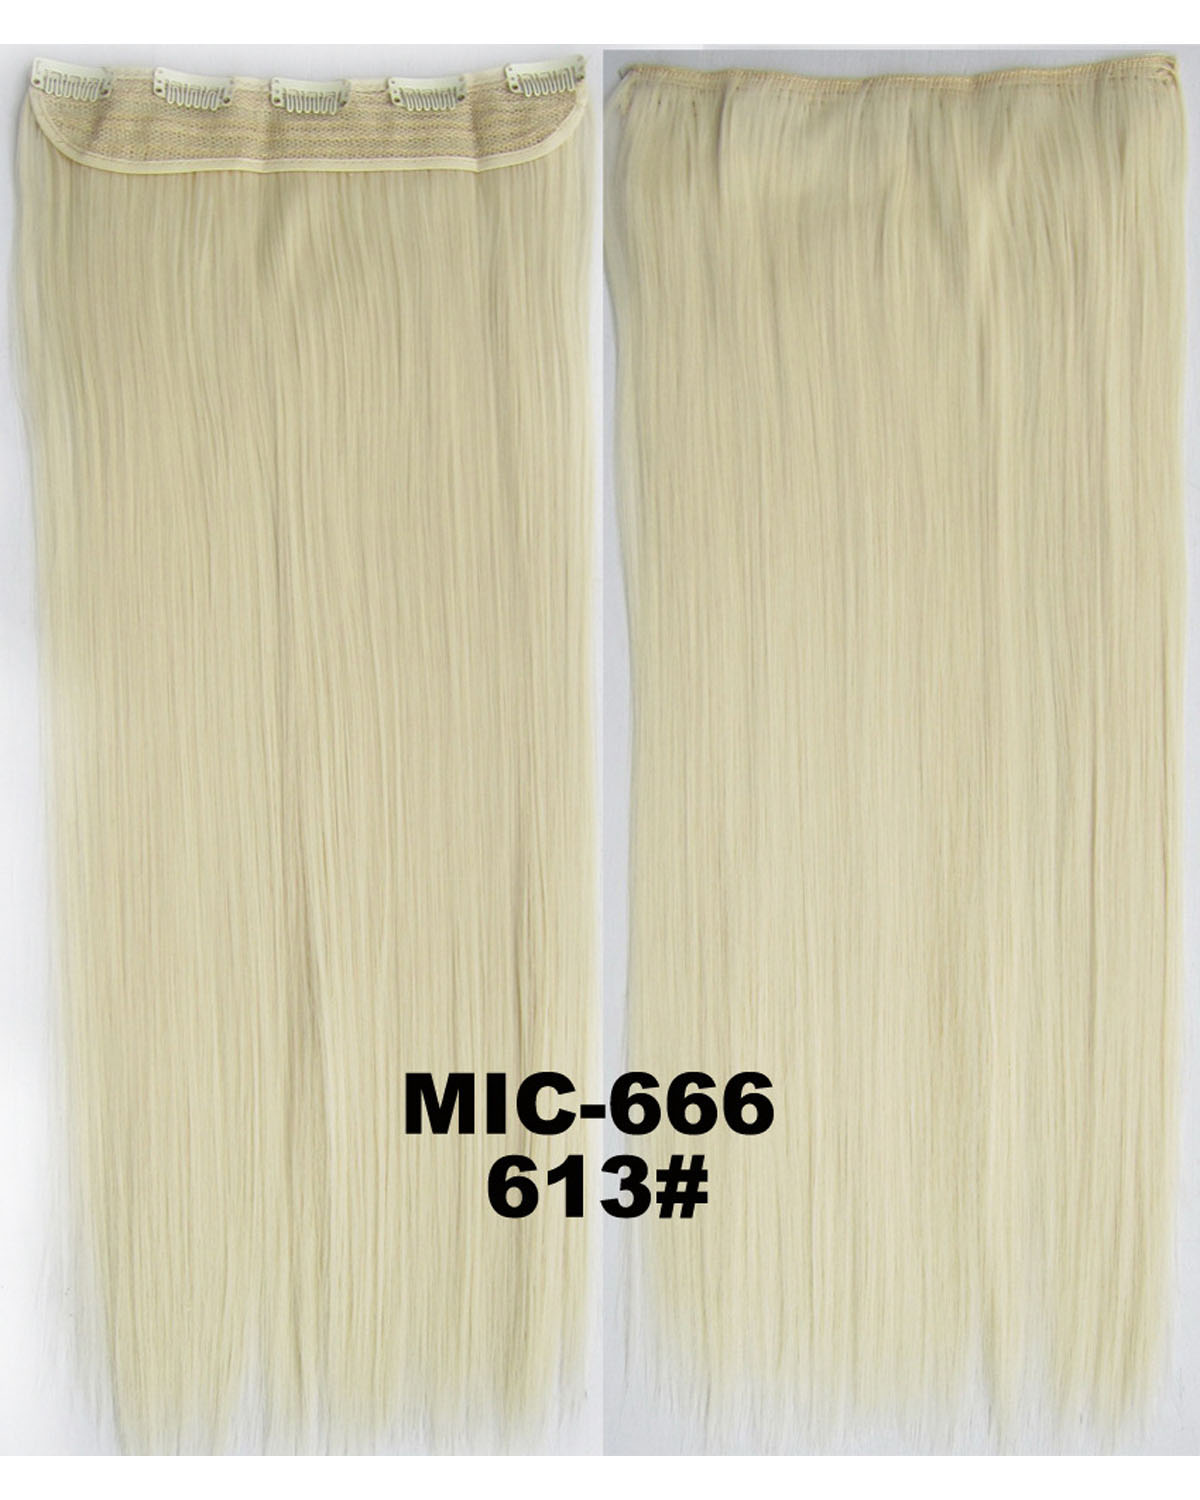 24 inch Modern Straight Long One Piece 5 Clips Clip in Synthetic Hair Extension  613#100g